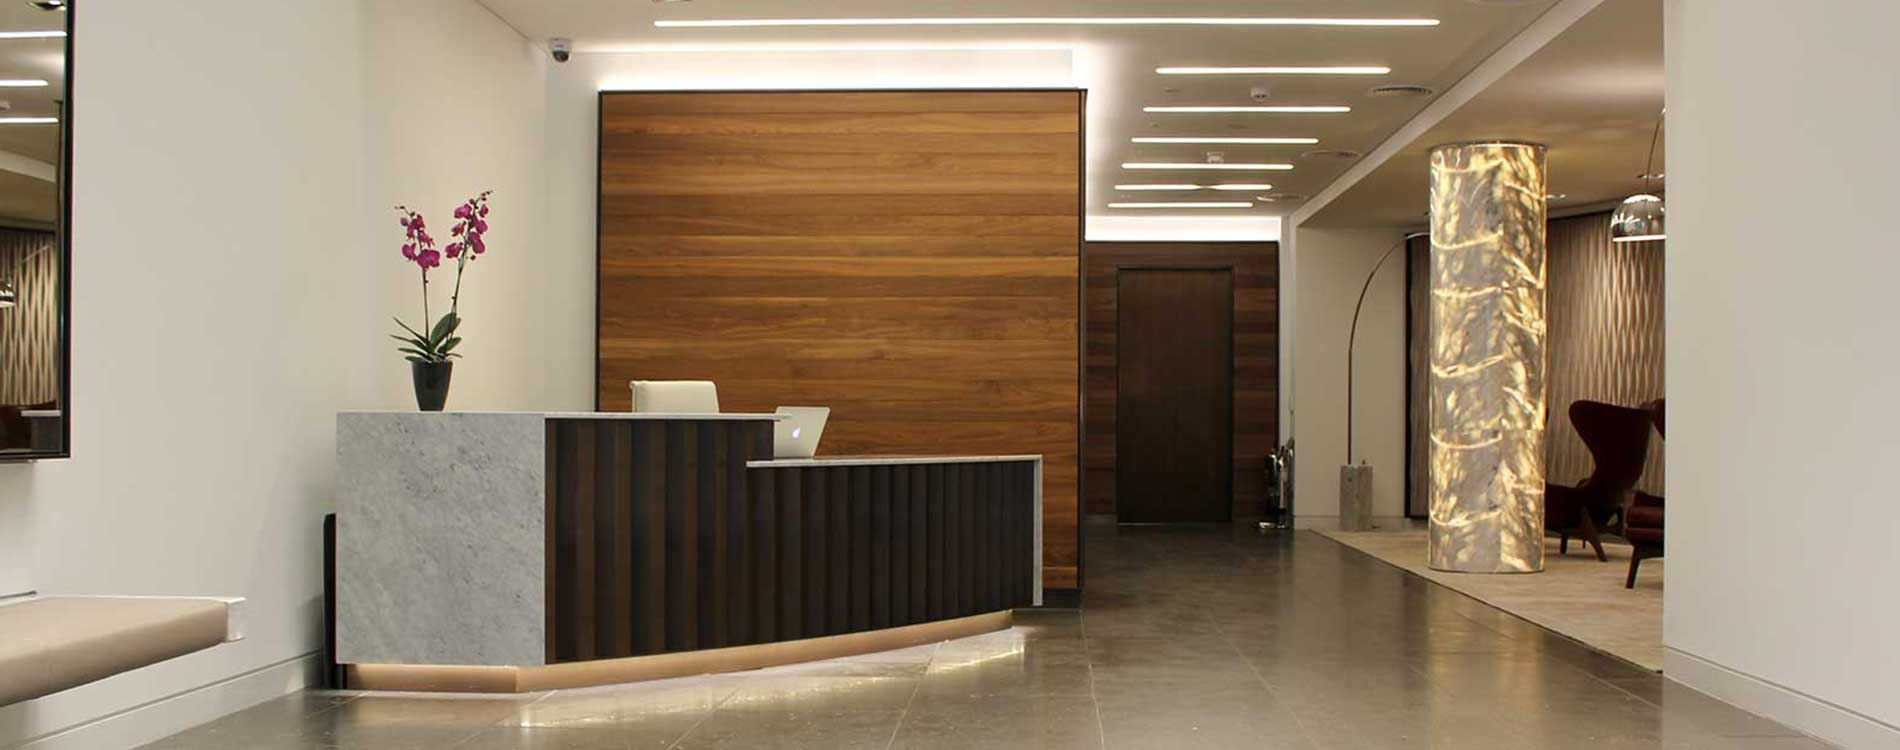 desk chairs and walls in a reception space.